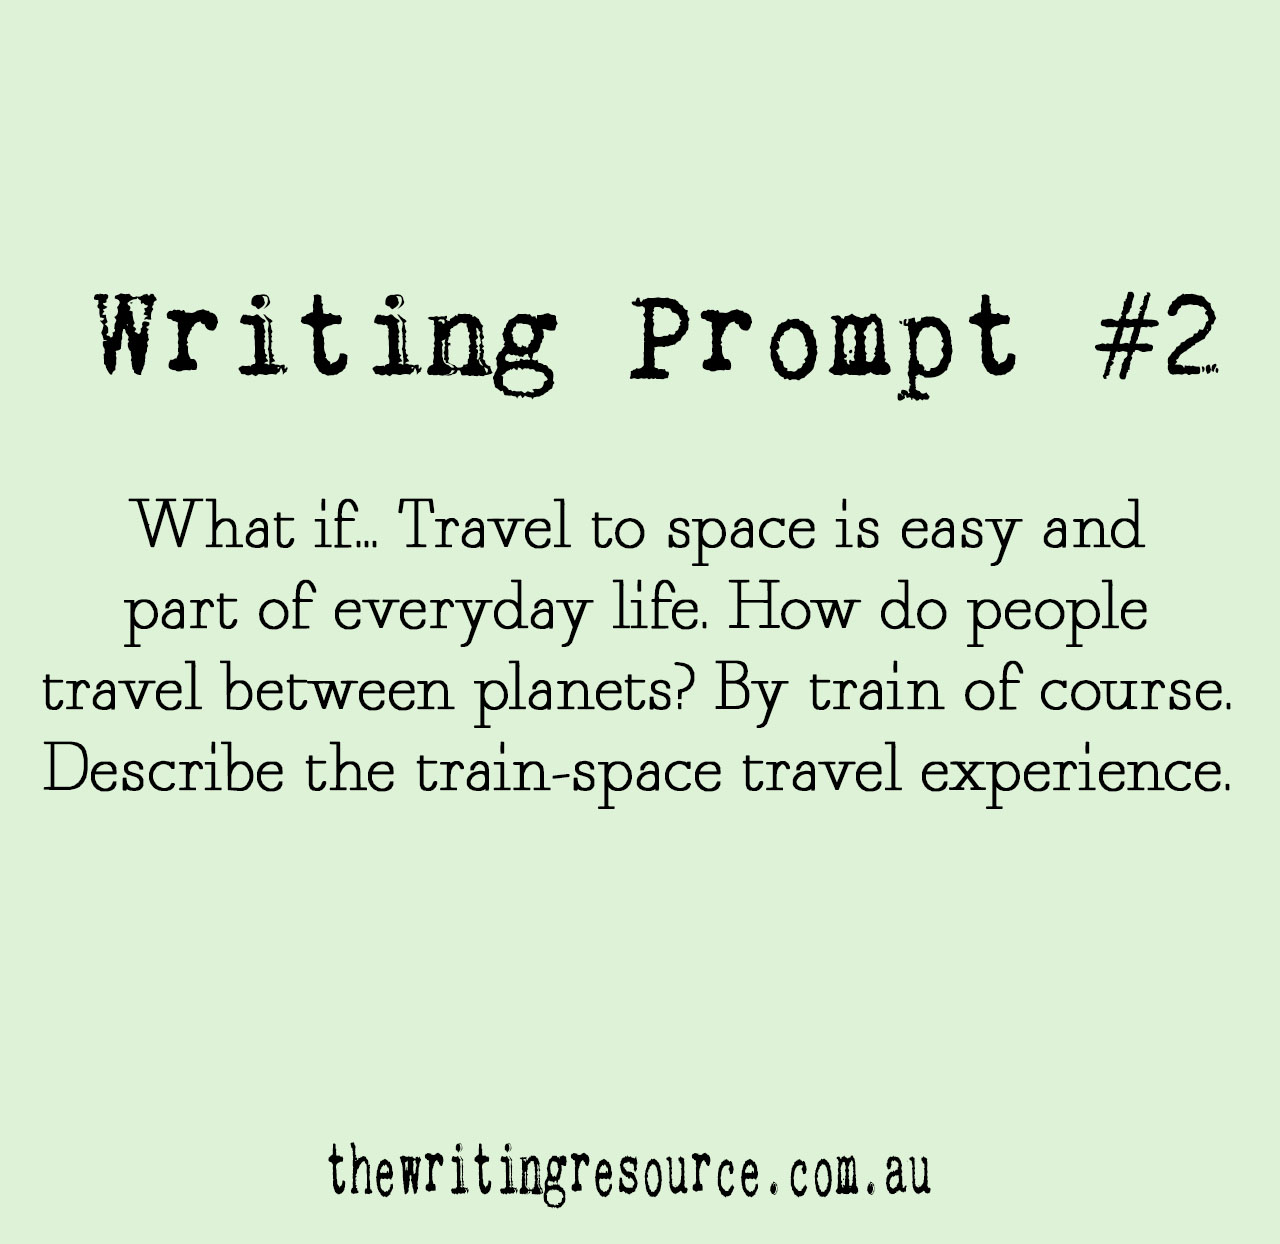 Writing Prompt #2